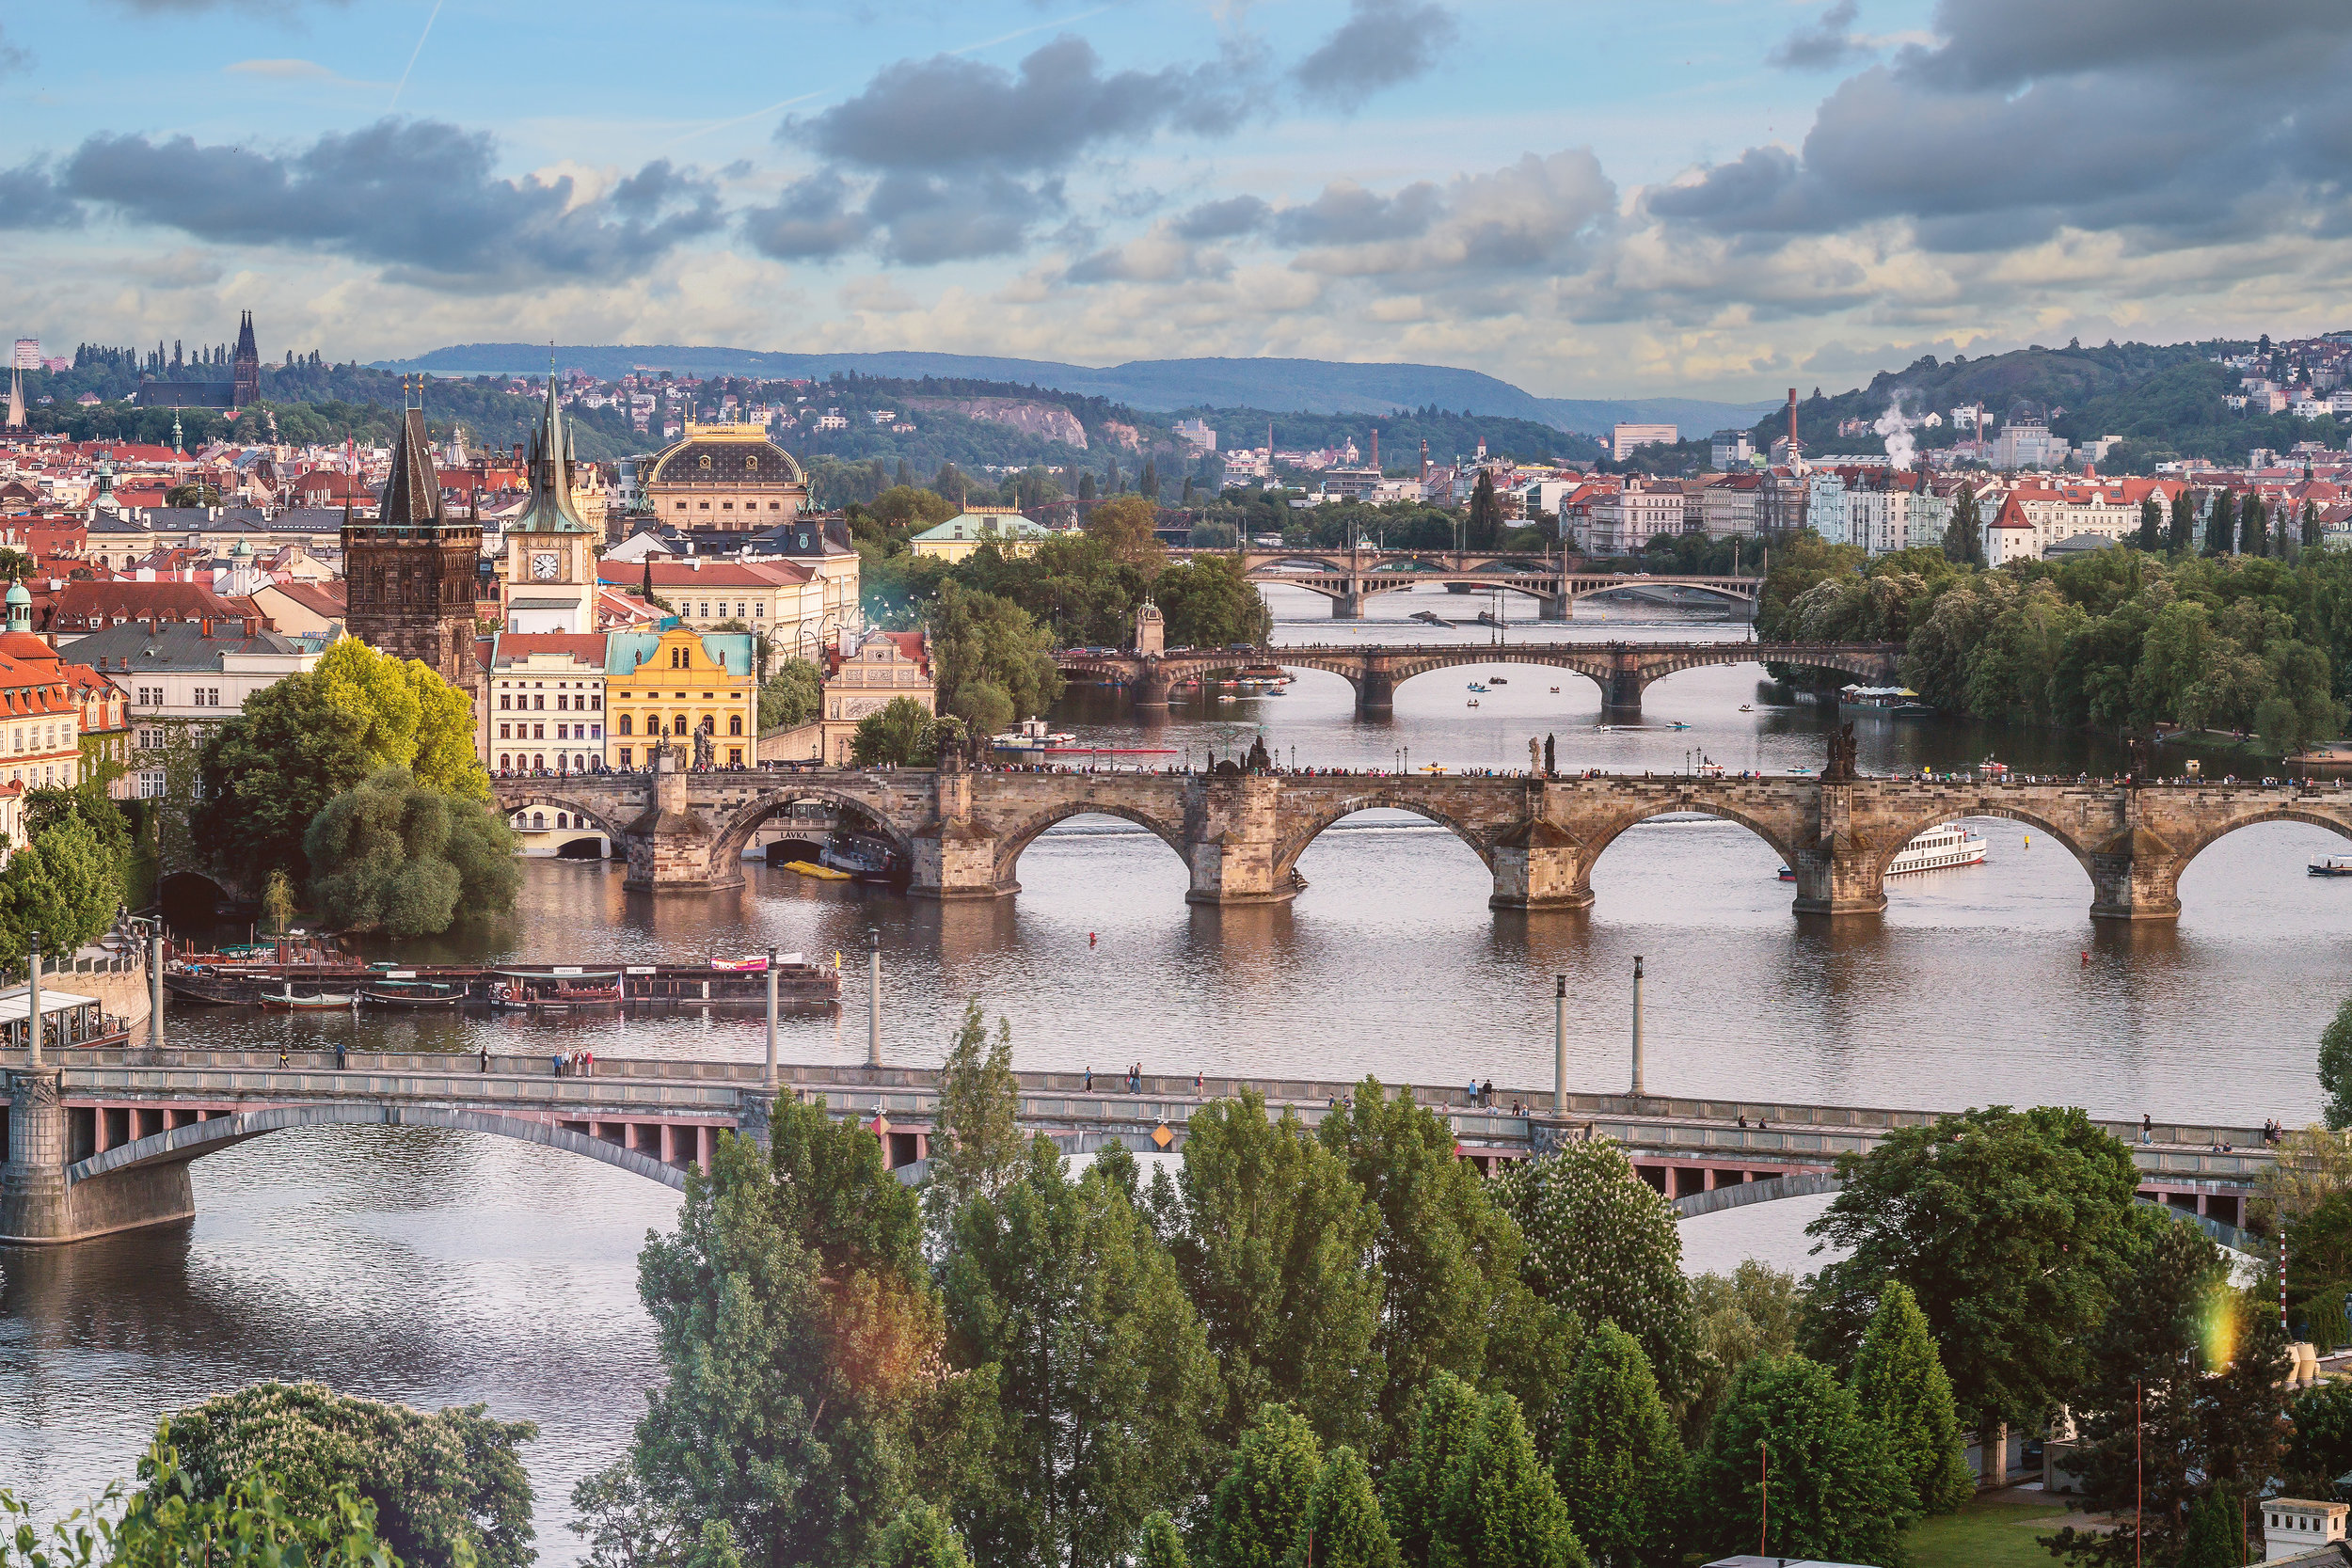 Your Guide to Visiting the Charles Bridge in Prague